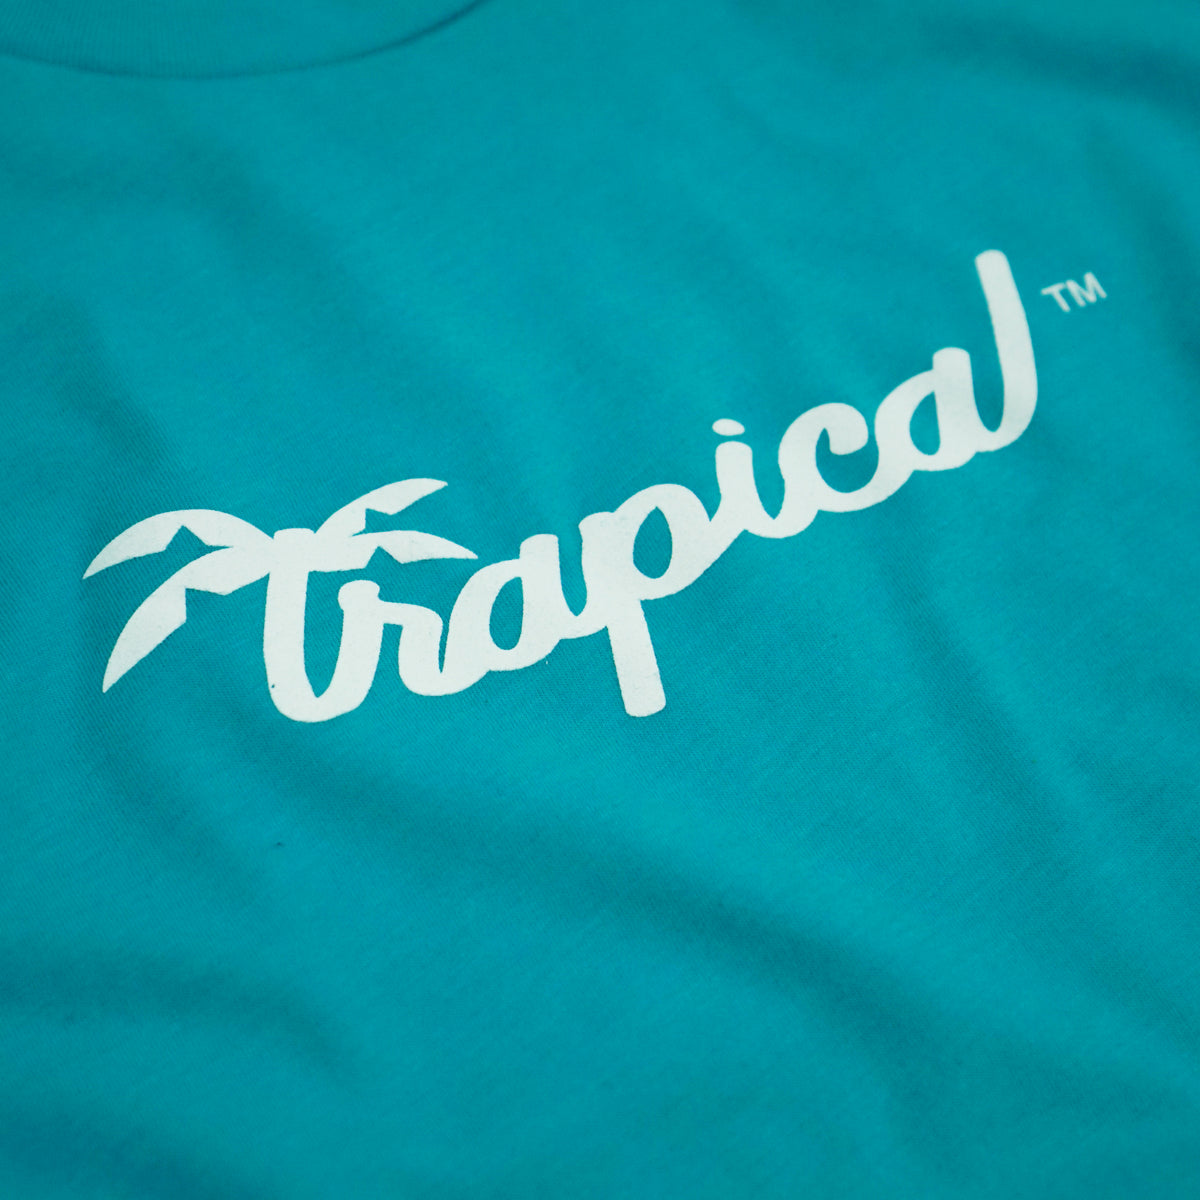 Signature T - Trapical